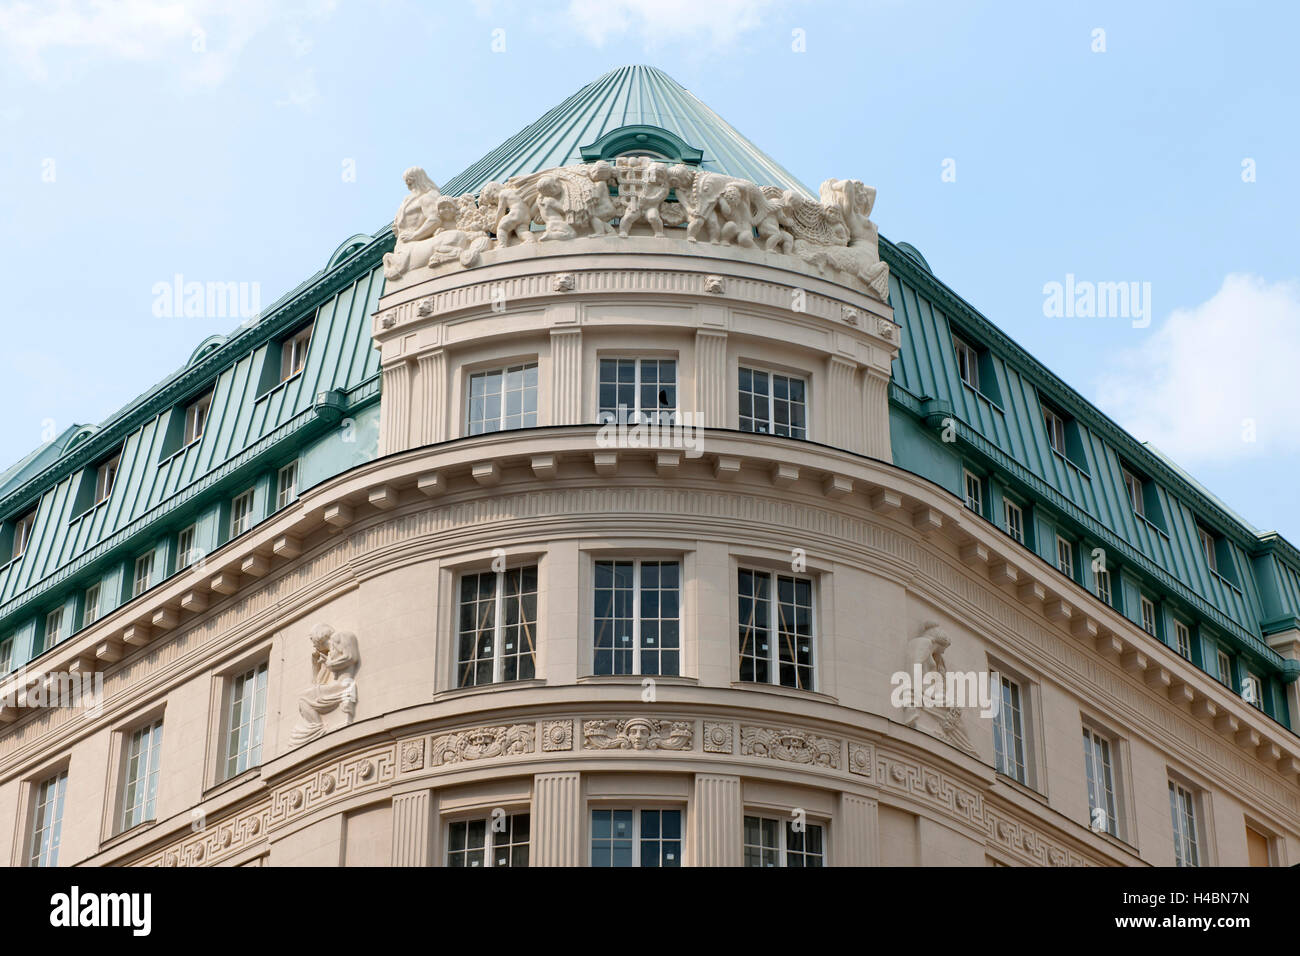 Austria, Vienna I, bowmaker's lane / lane Seitzer, building of the former country bank, in 1913-15, architect - Stock Image